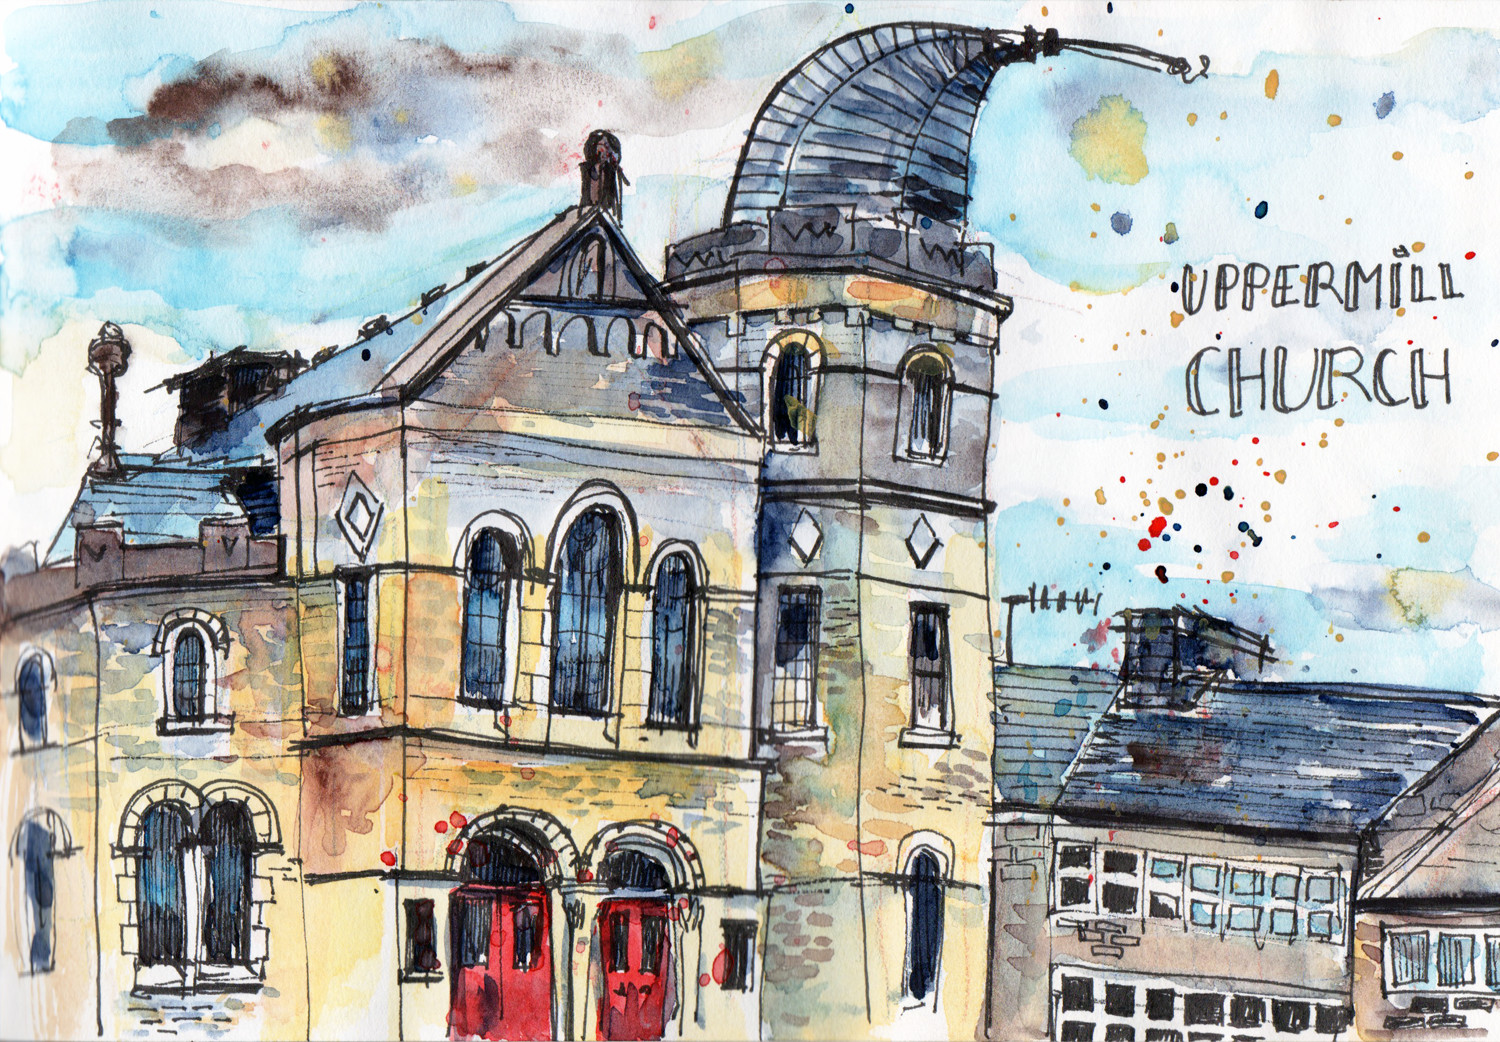 Sketching in Uppermill Church Drawn in pen and Watercolour by Sophie Peanut